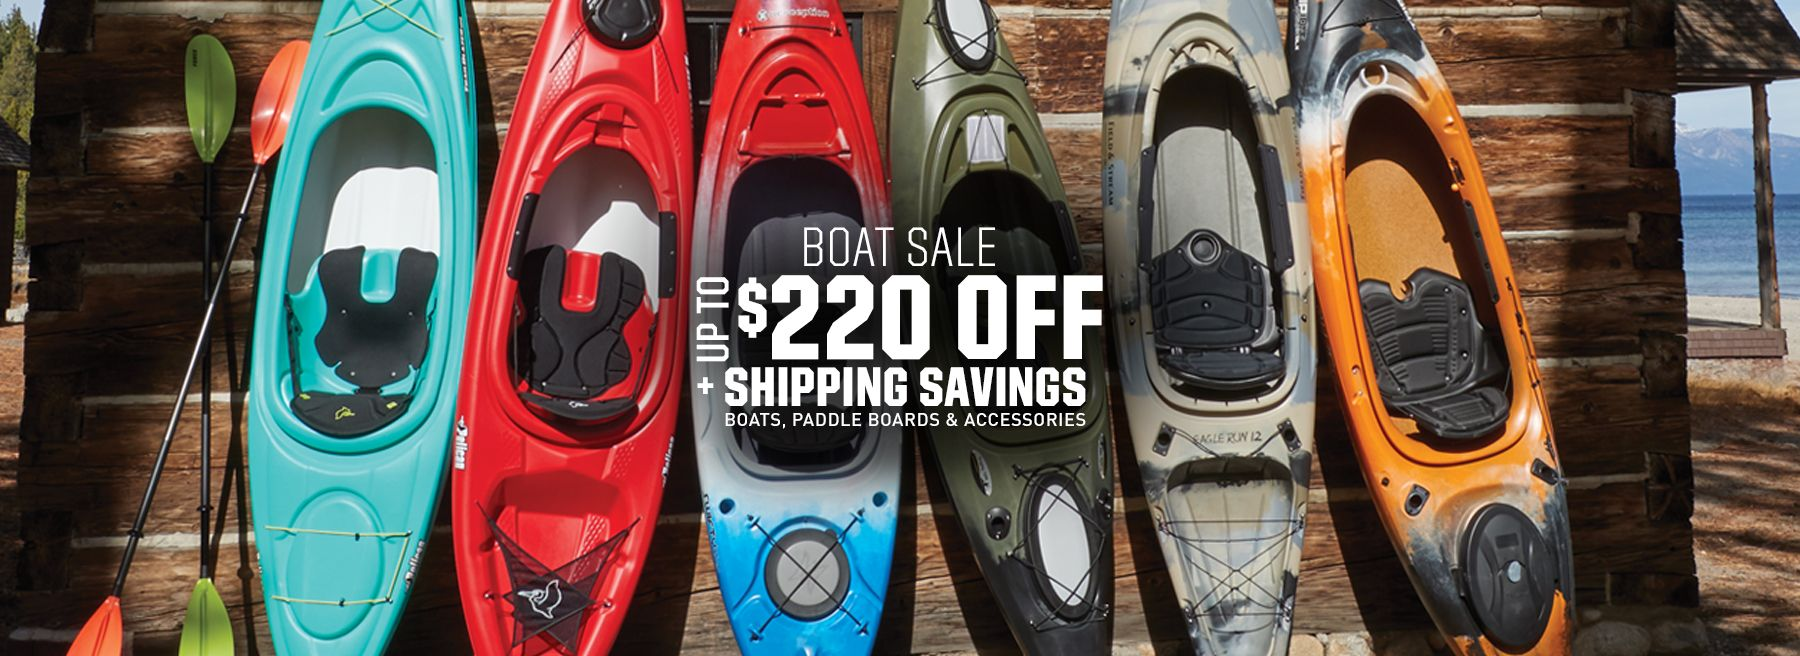 Shop The Biggest Boat Sale Of The Year